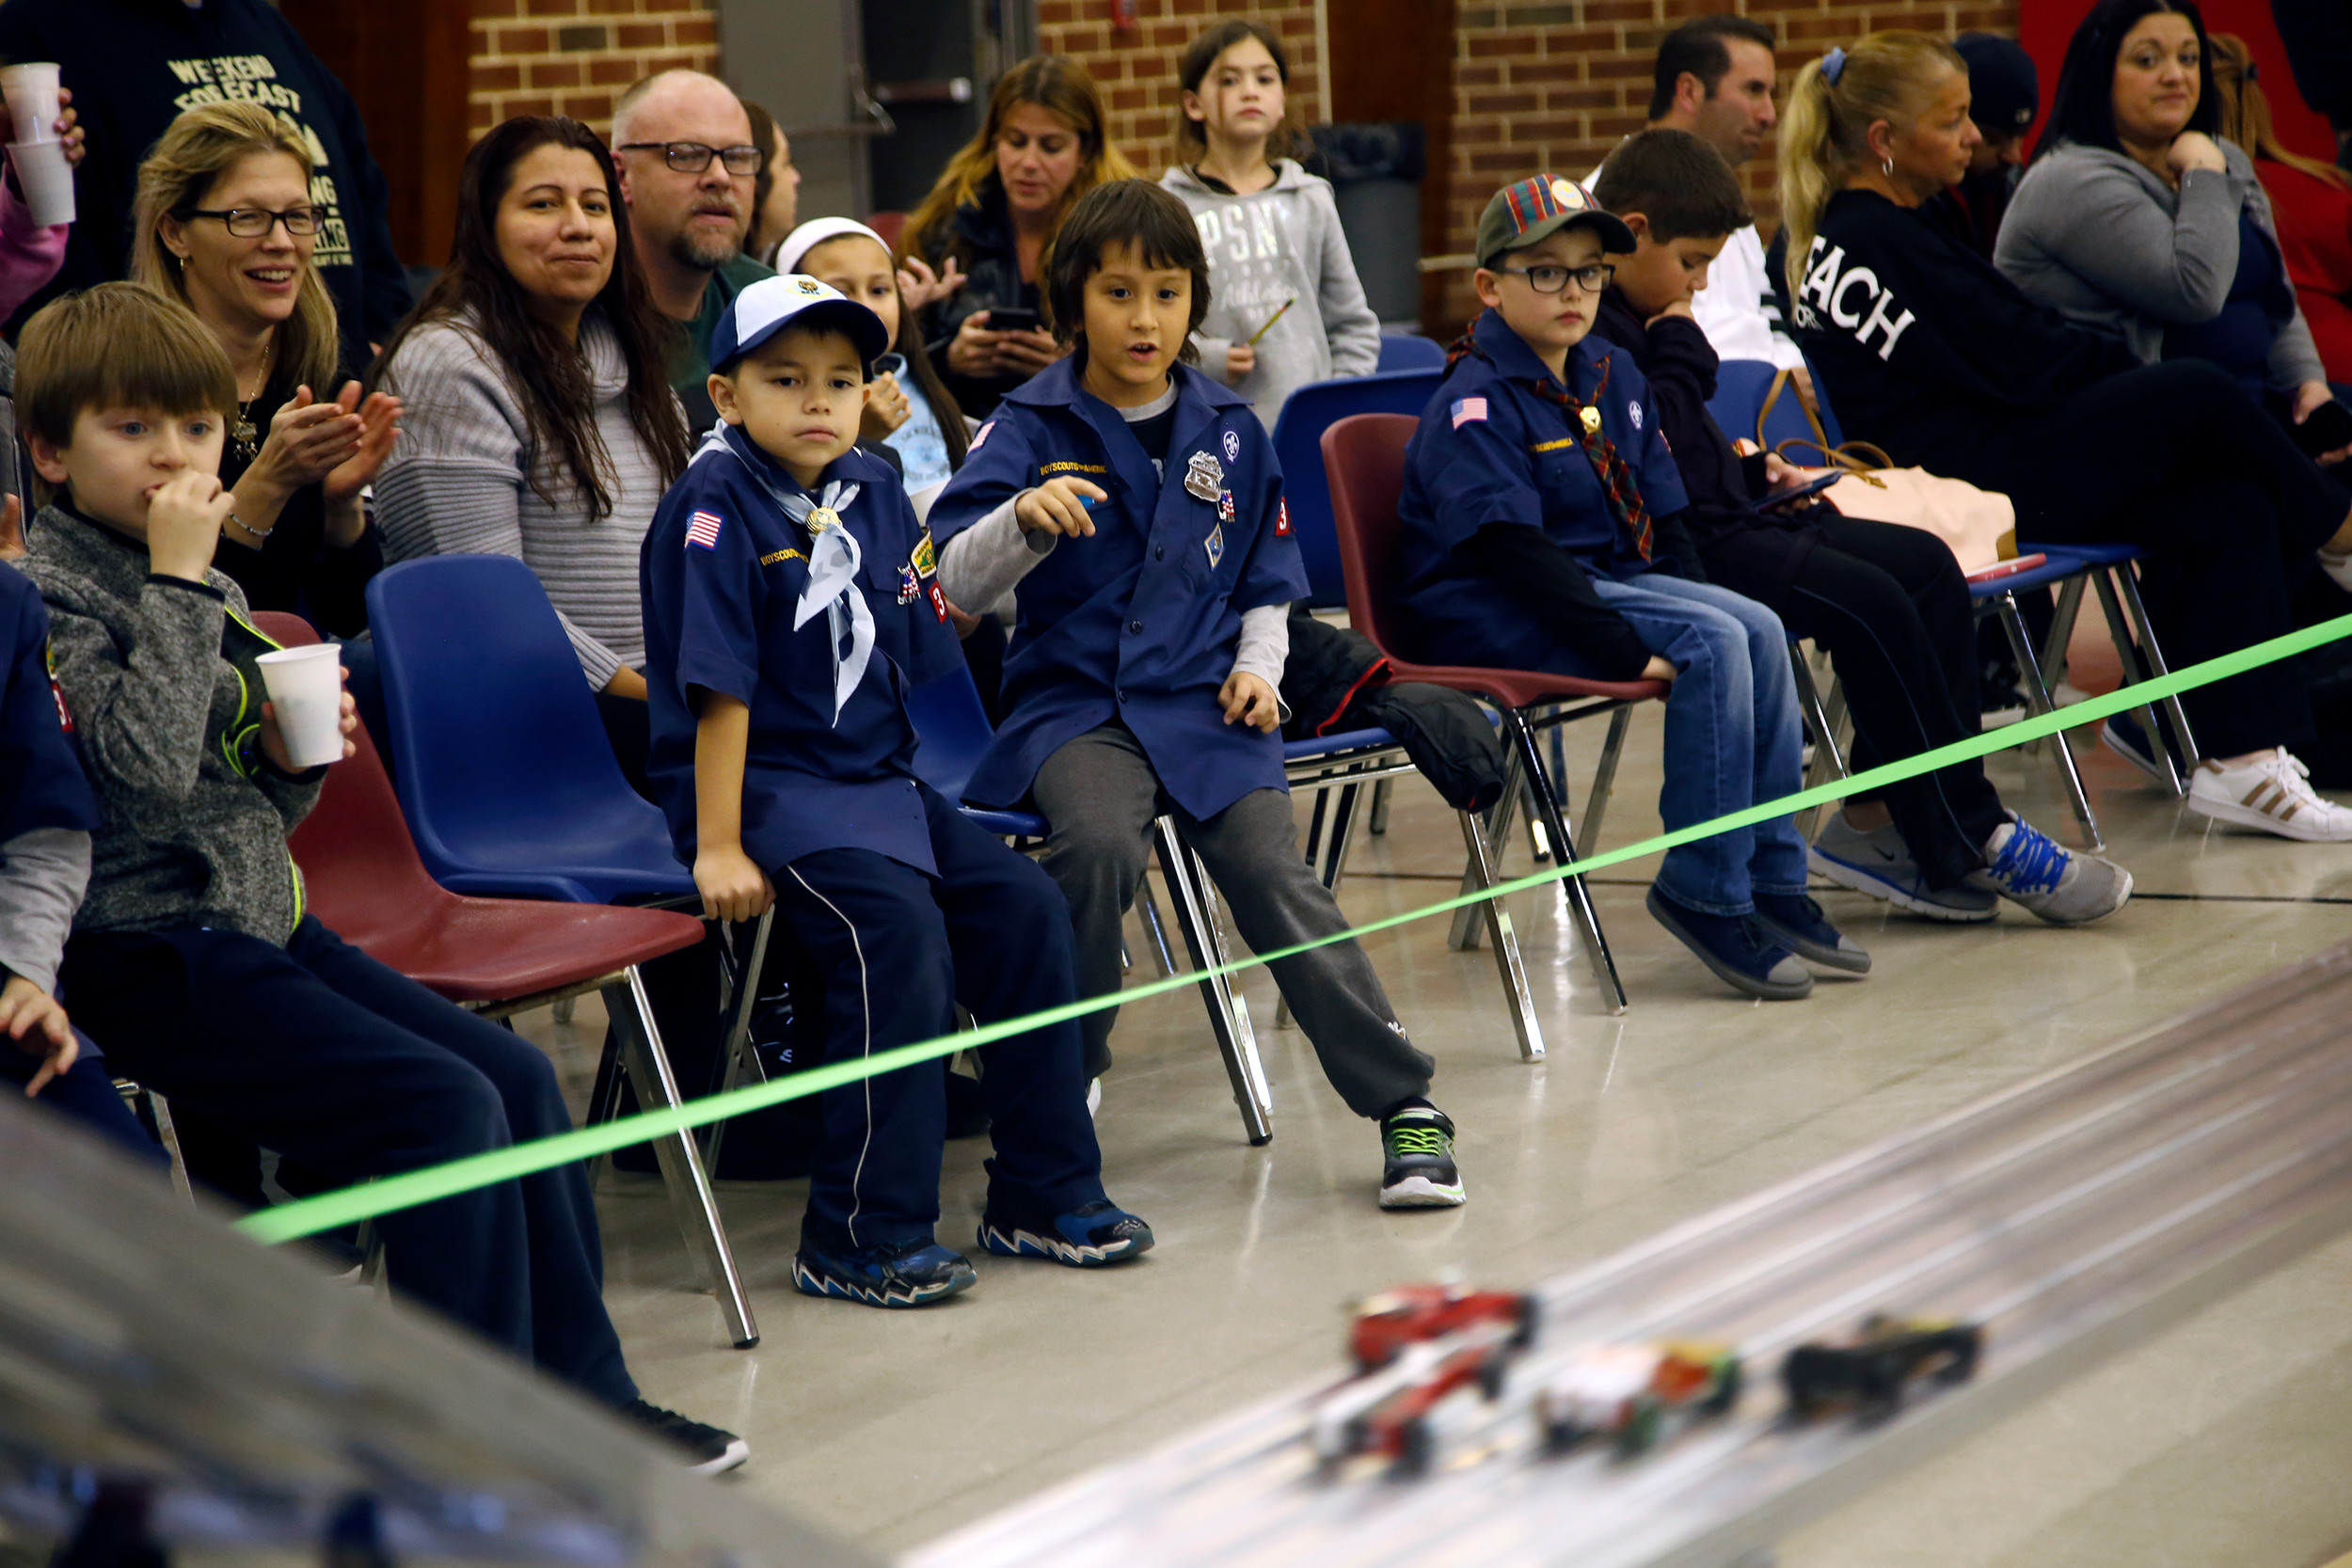 Cub Scouts Aiden Pilch and Vincent Aupied enjoyed a great view of the action during Pack 312's Pinewood Derby on March 3.